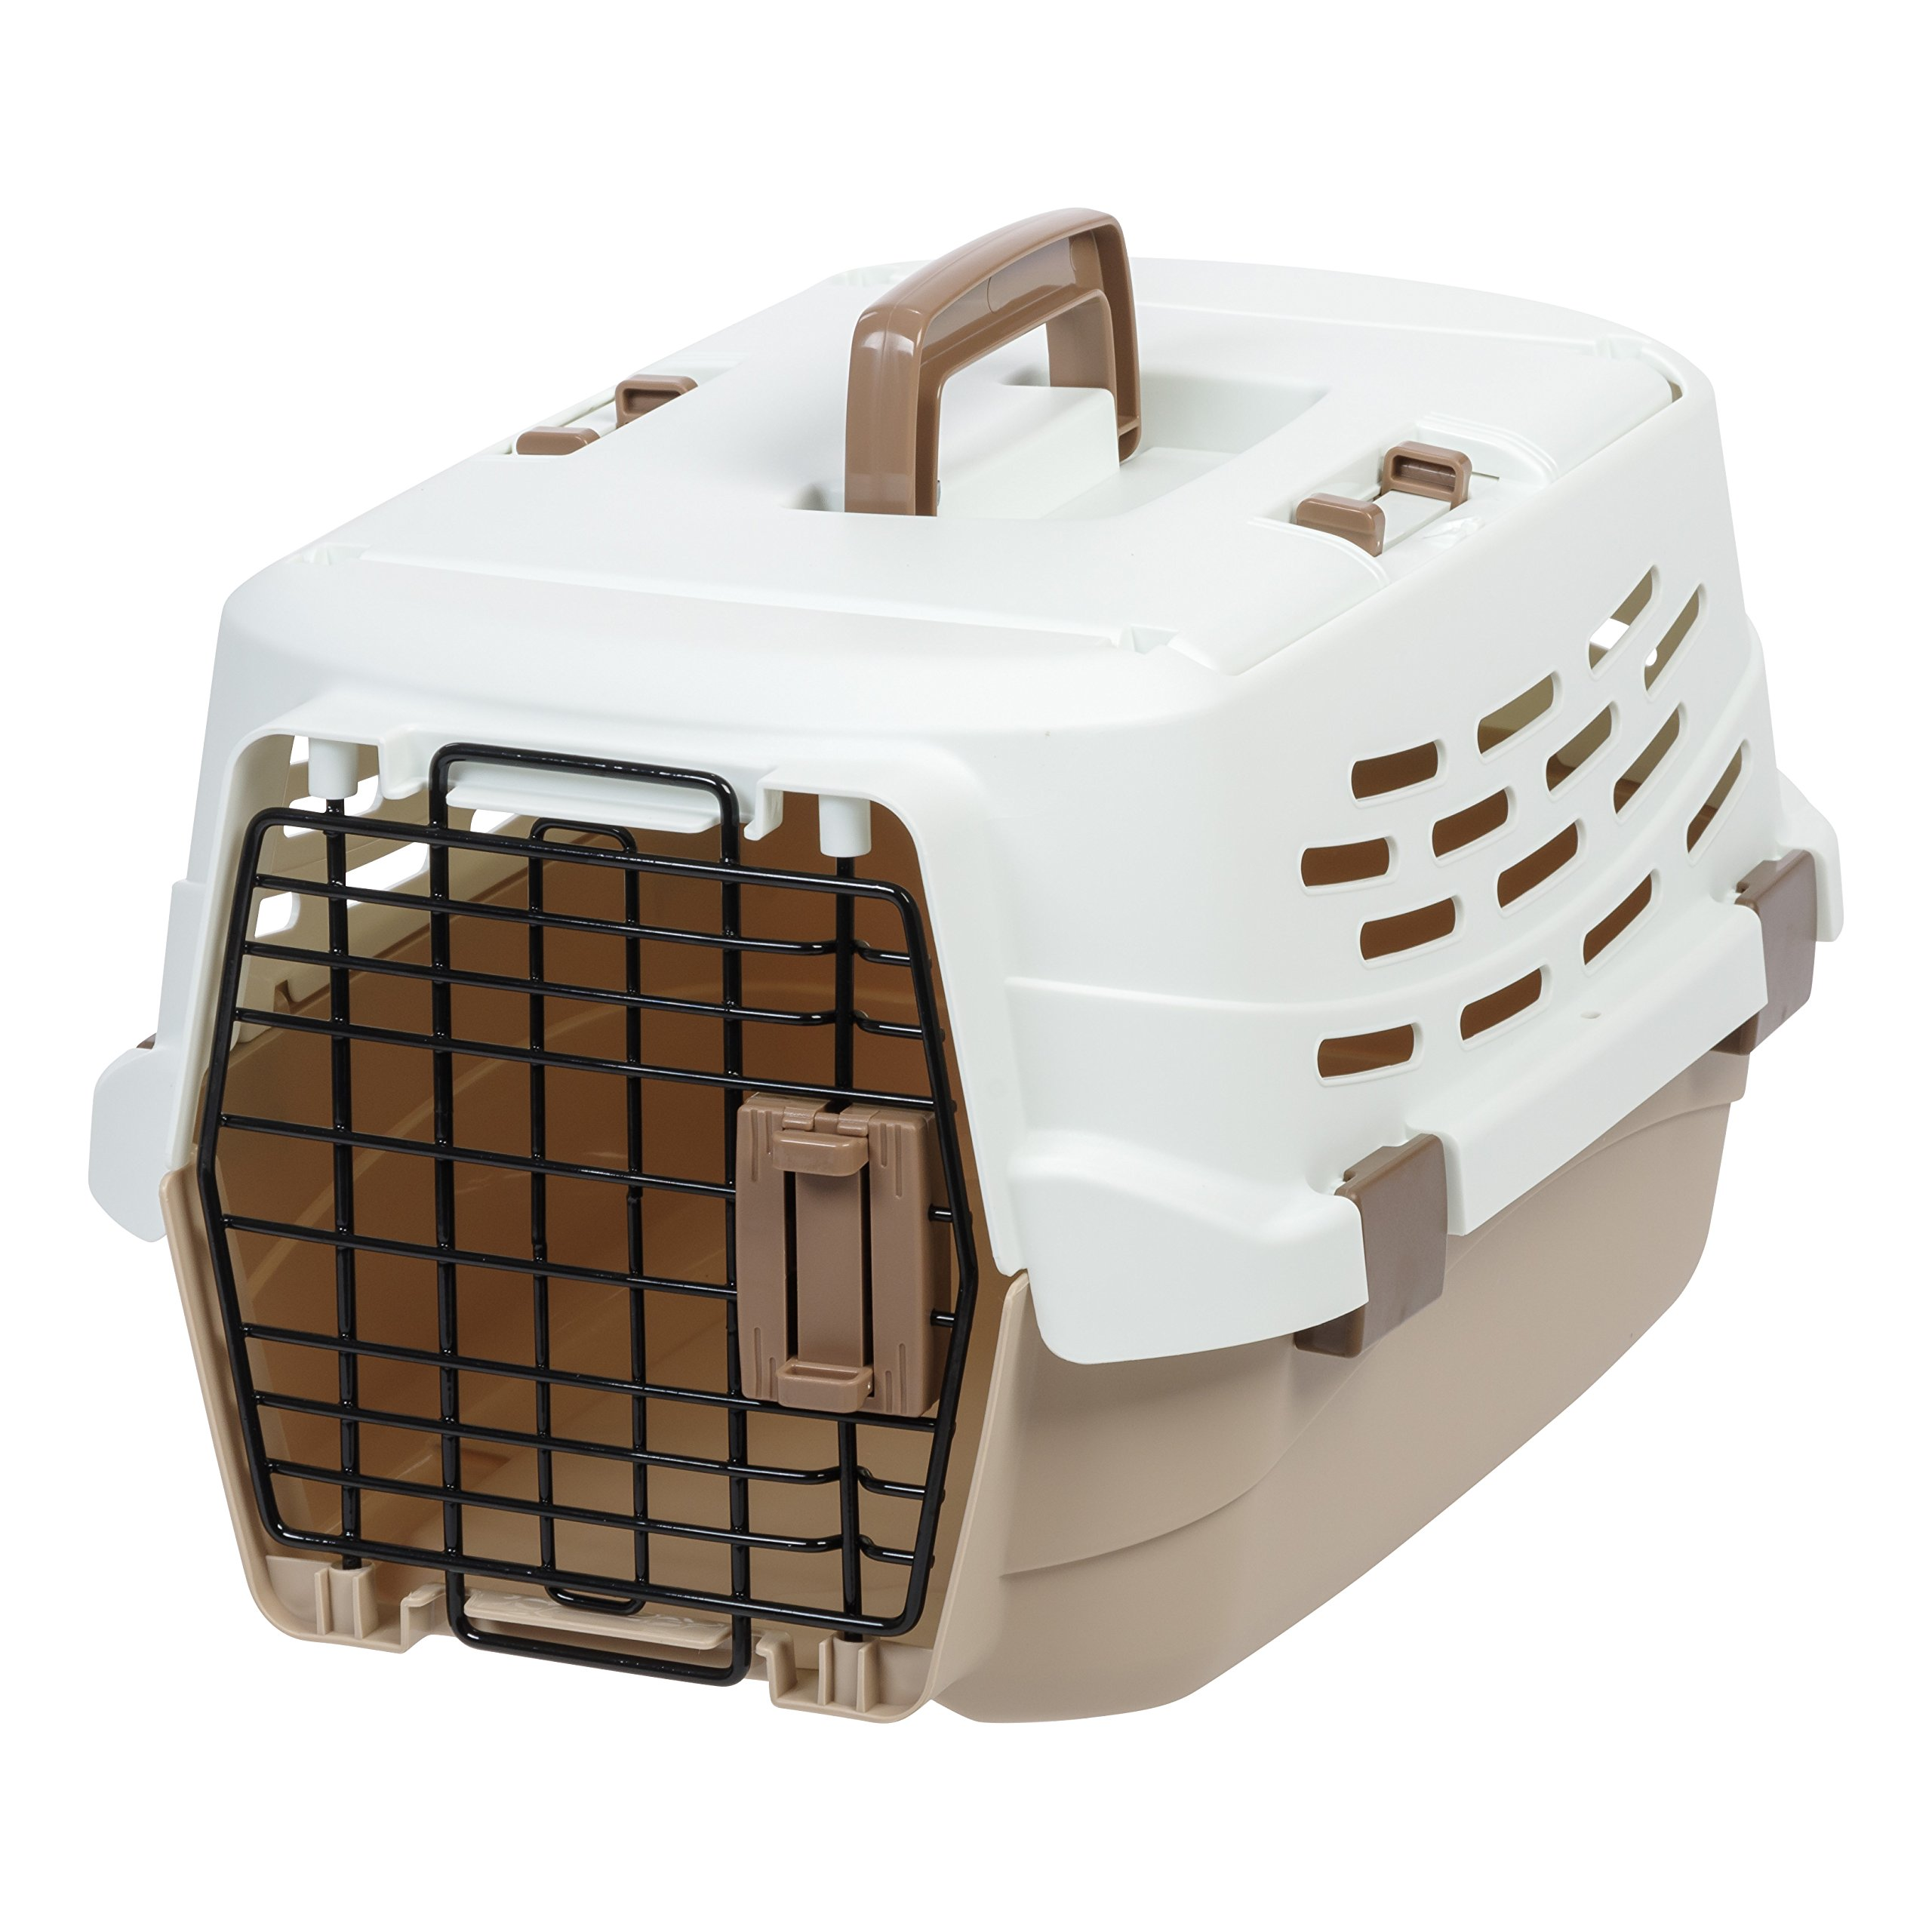 IRIS Small Easy Access Pet Travel Carrier, Off-White/Brown by IRIS USA, Inc.